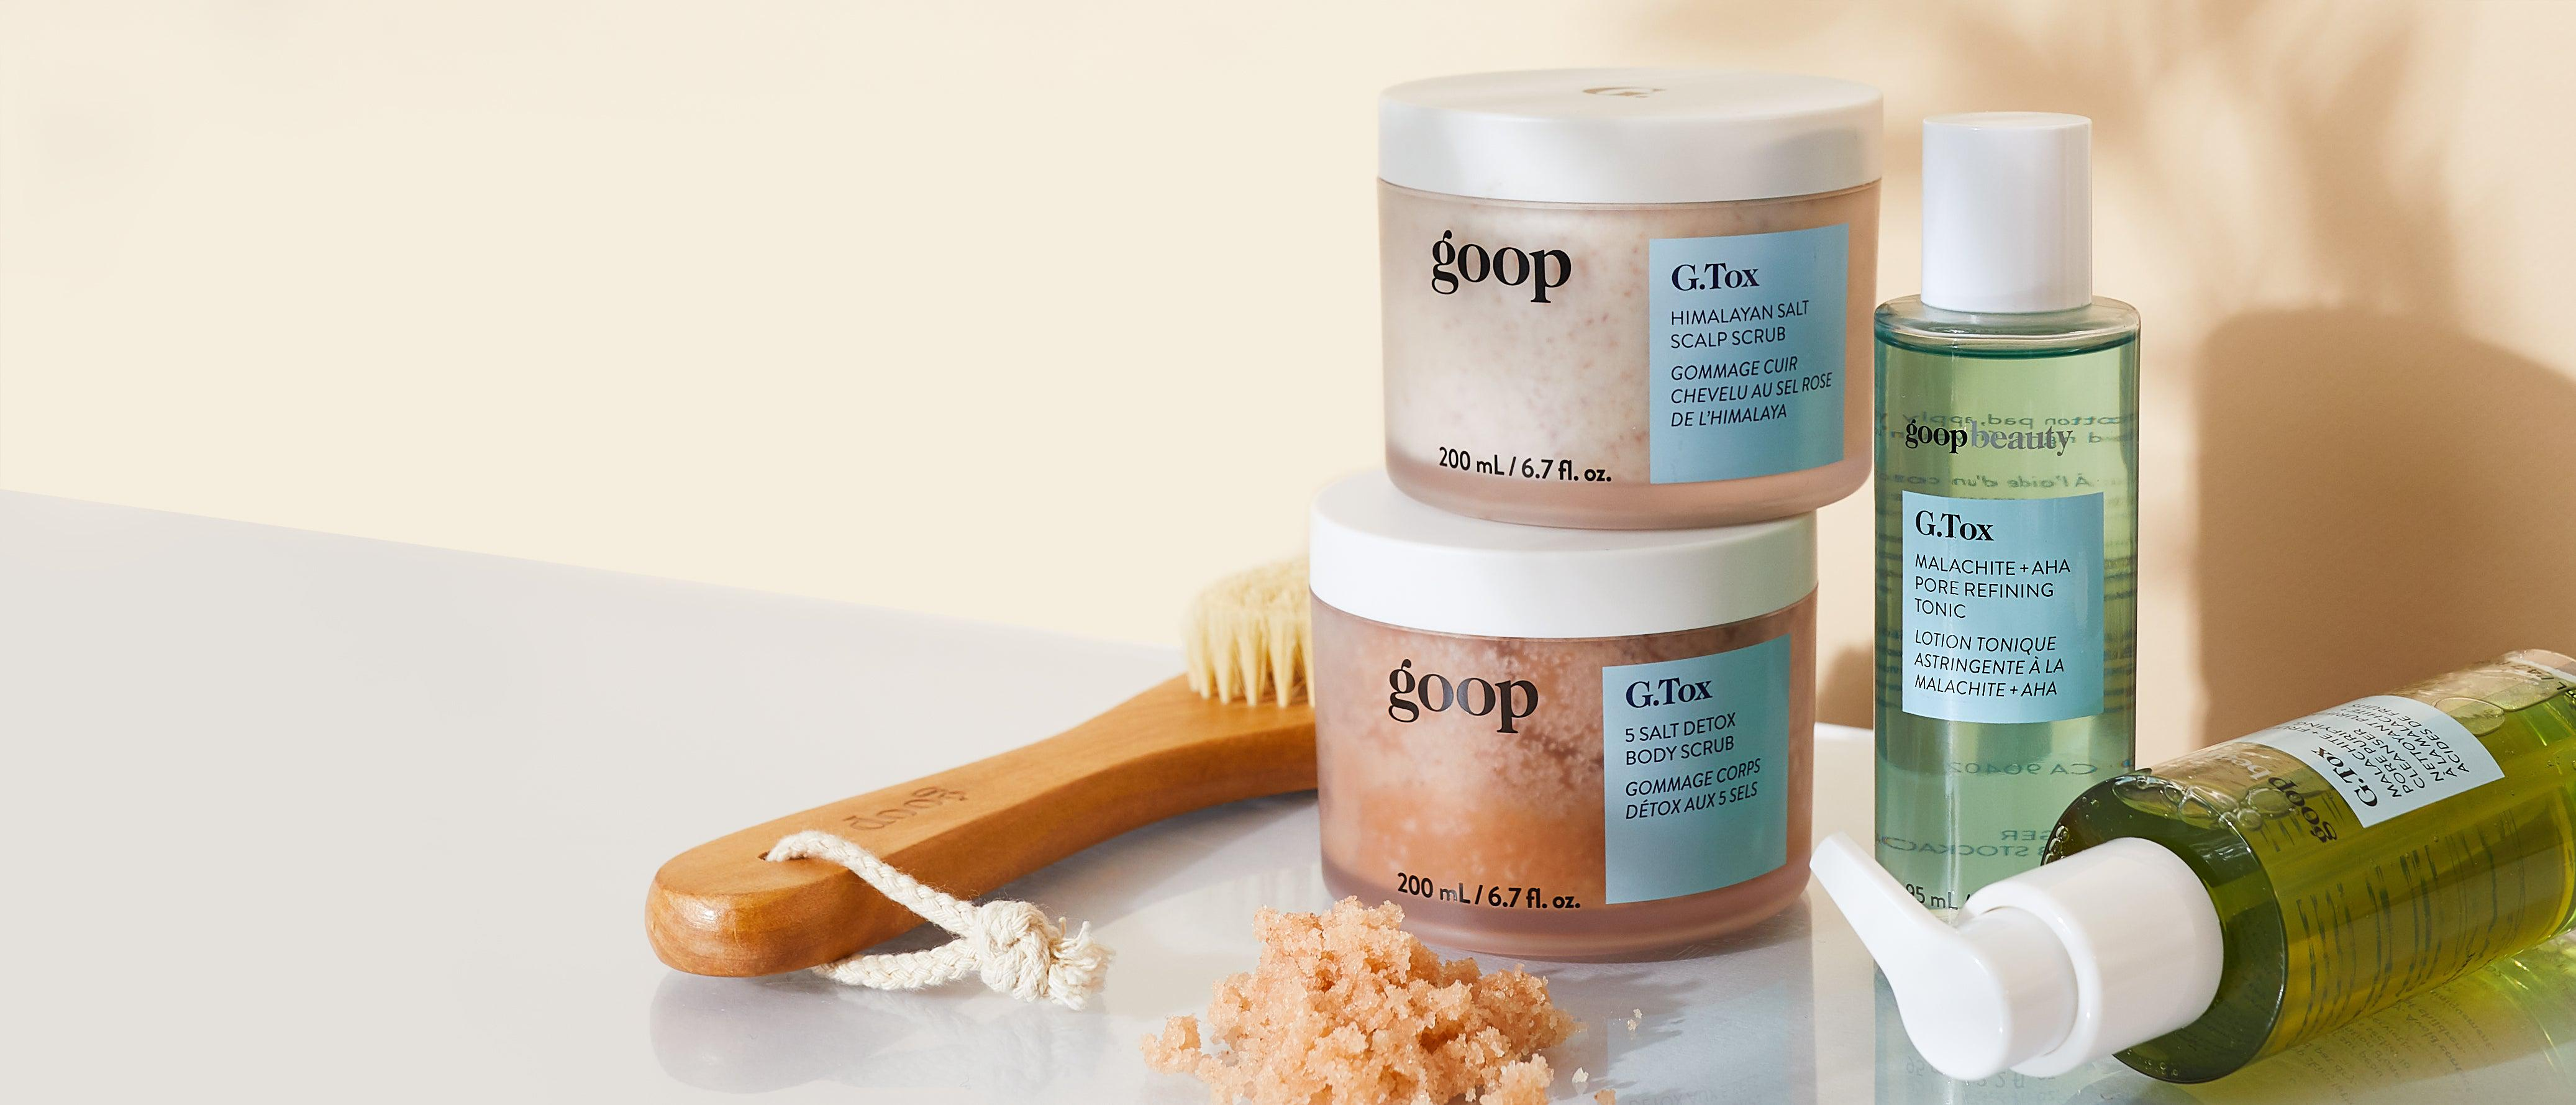 Clean cleanser, toner, body scrub, scalp scrub, and dry brush by goop Beauty g.tox